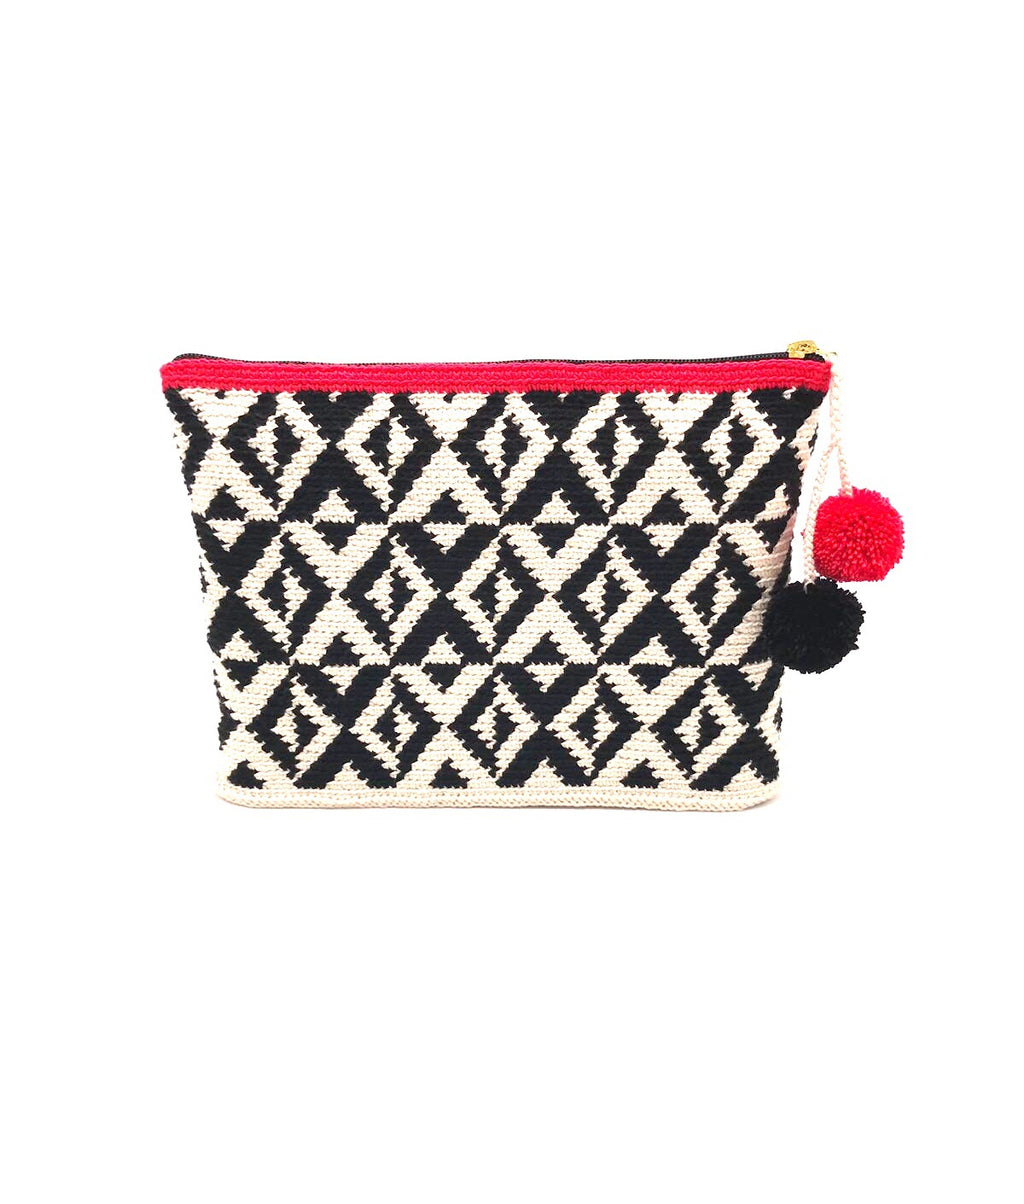 Clutch, Off white body Black X geometric pattern with pompons.